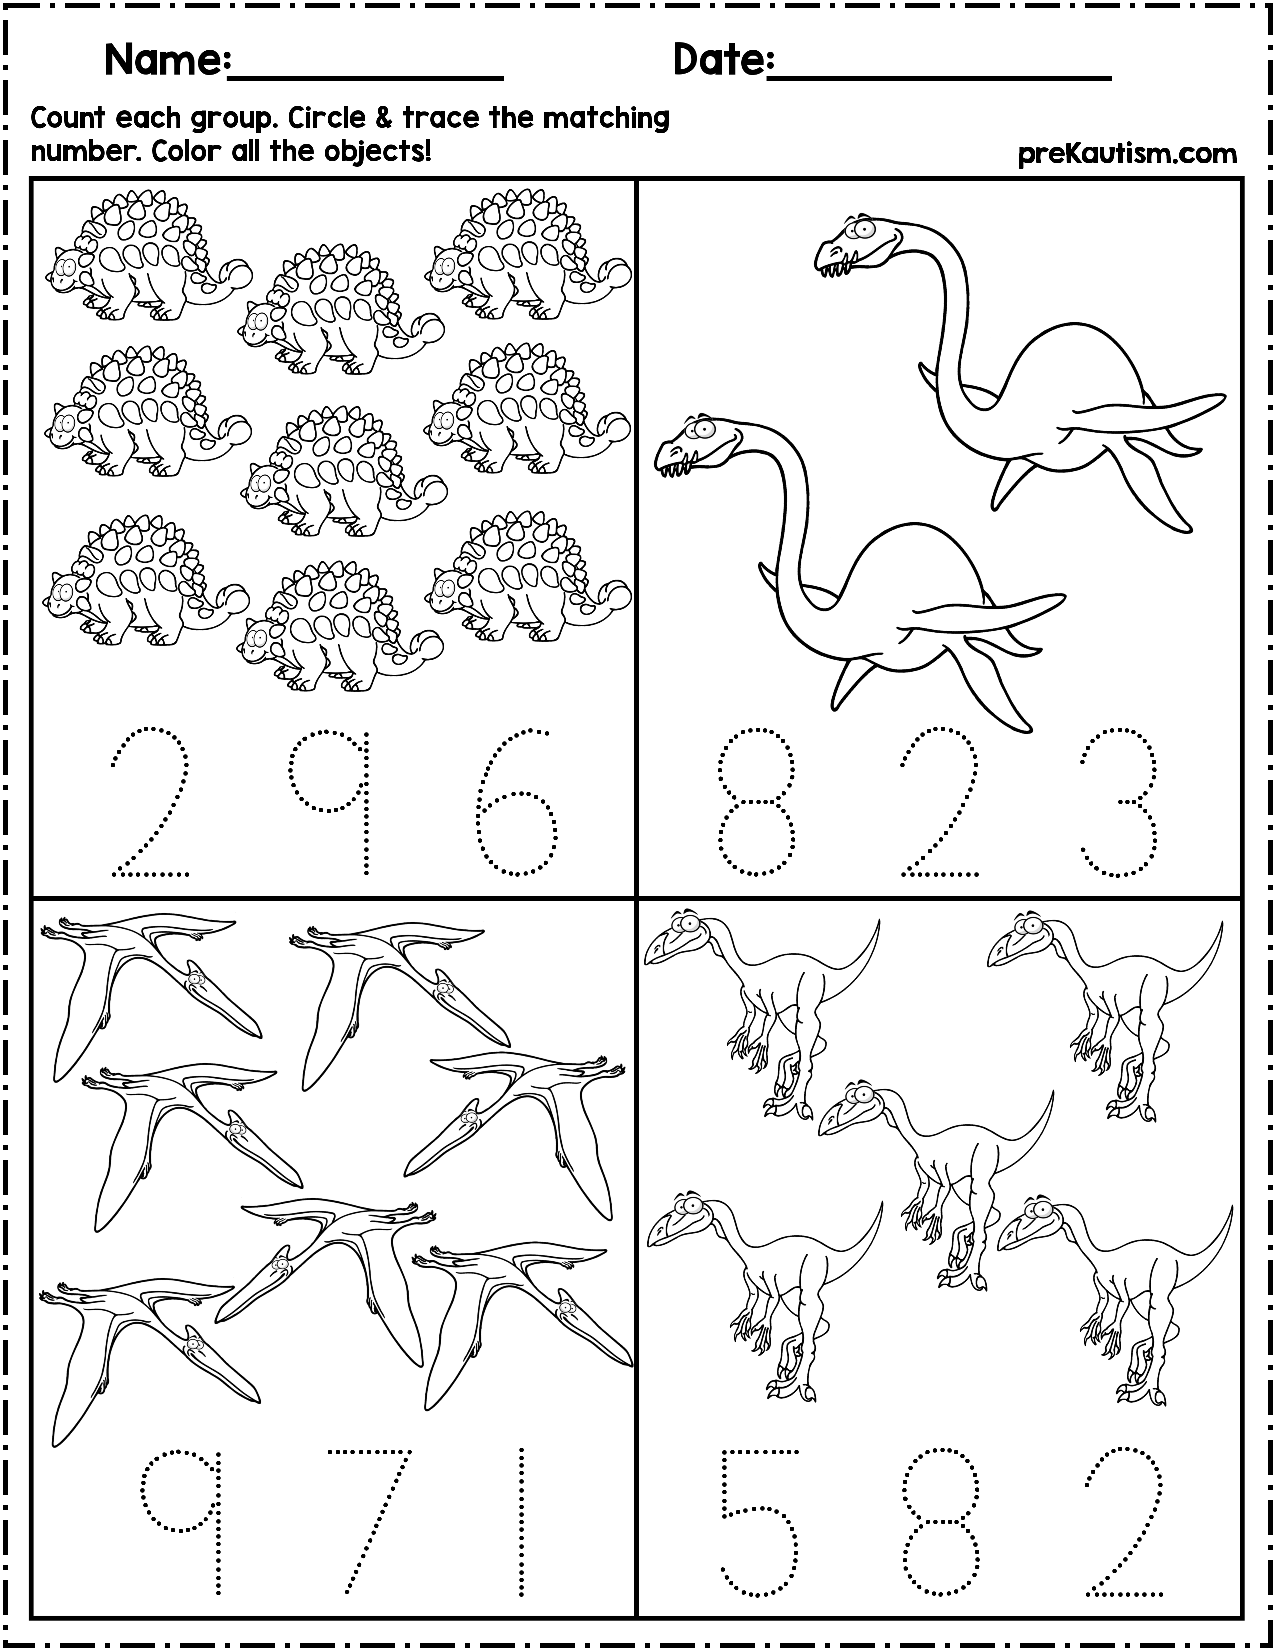 1 50 Use These Worksheets To Teach Quantity Counting And Number Writing Pack Inc Dinosaur Activities Preschool Dinosaurs Preschool Dinosaur Theme Preschool [ 1650 x 1275 Pixel ]